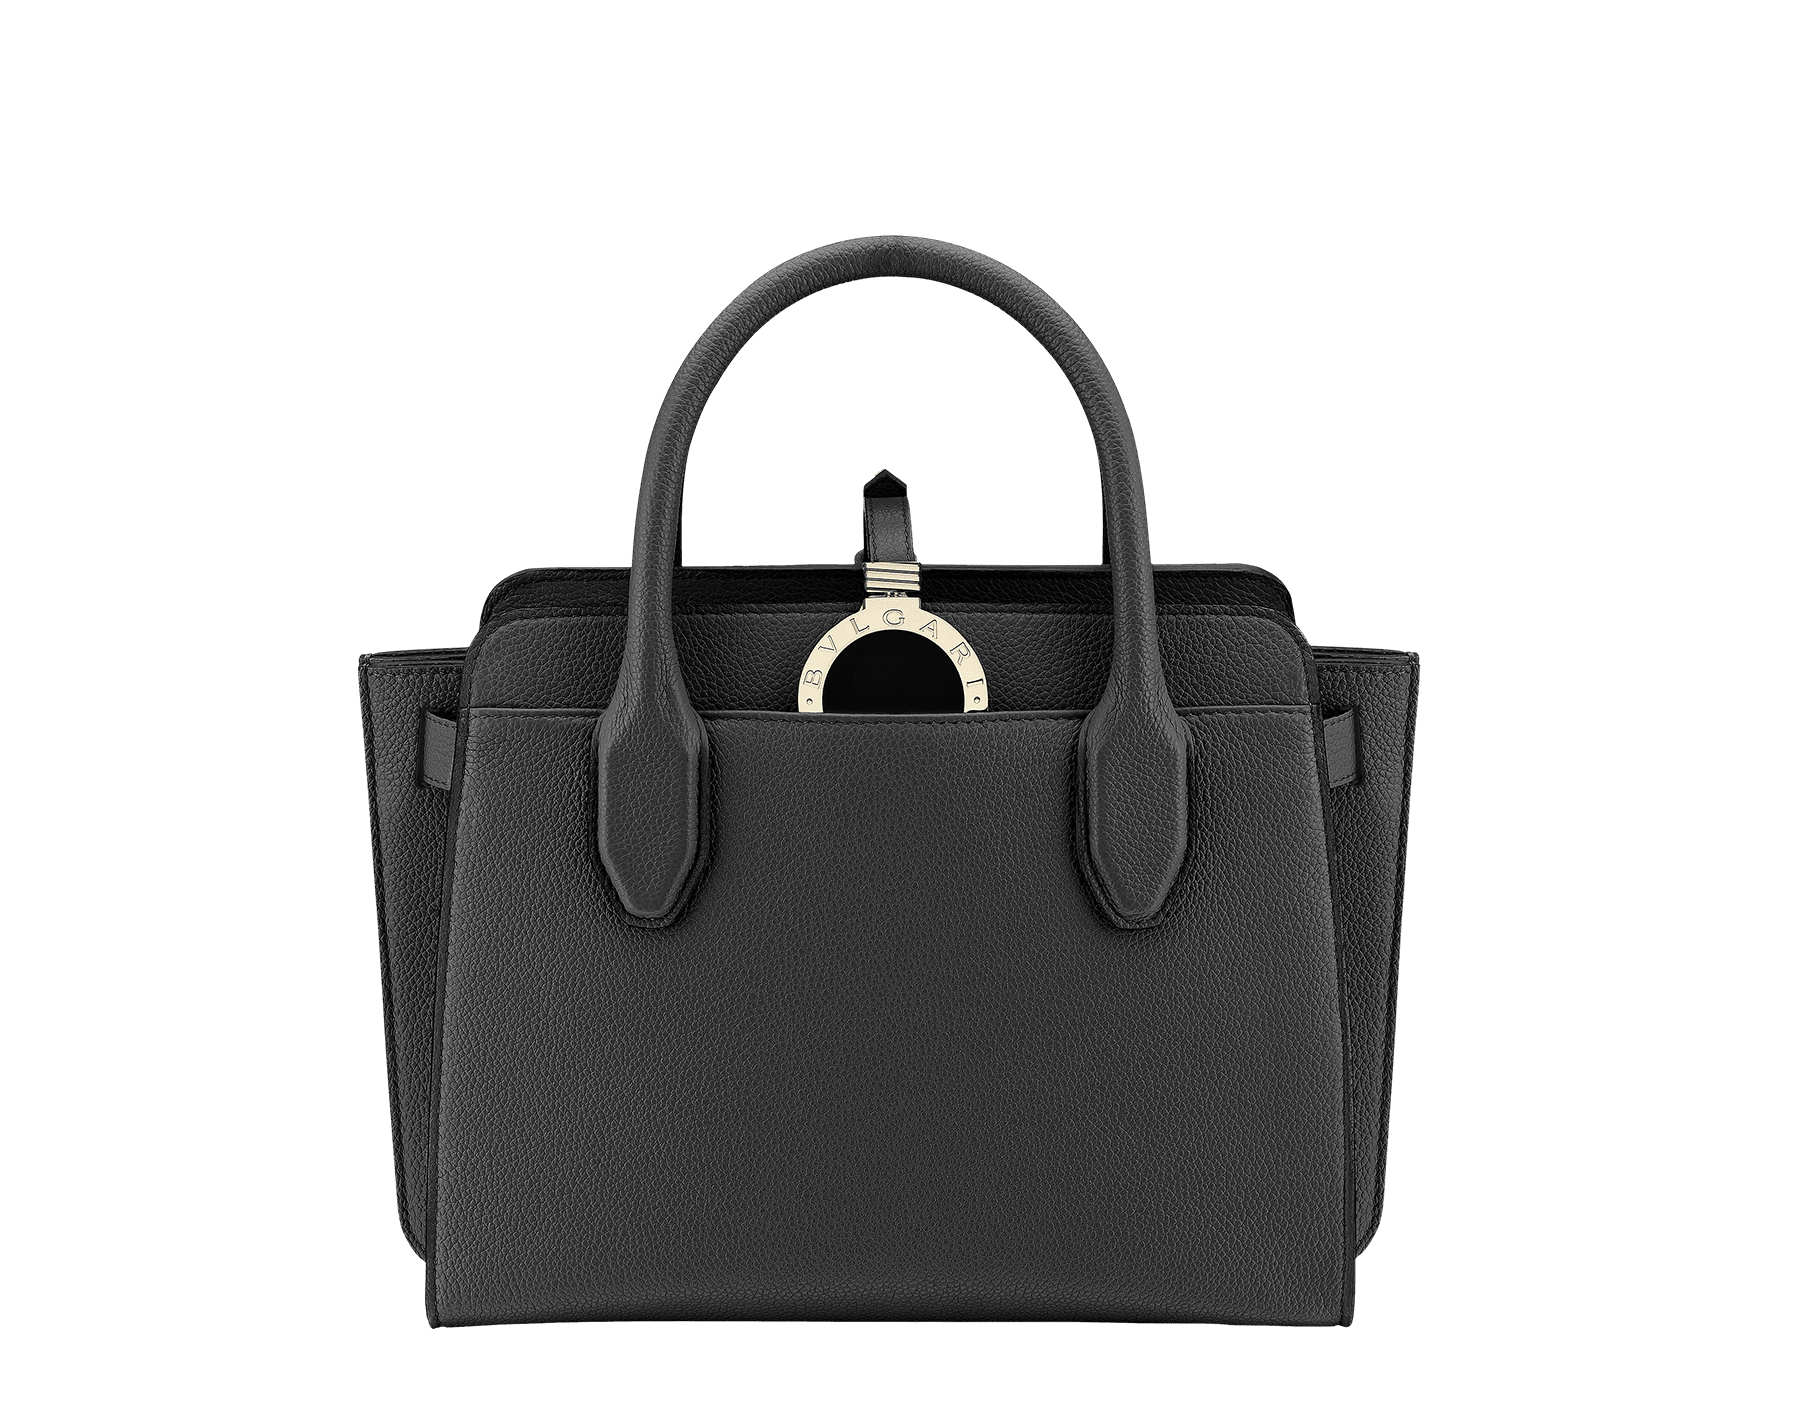 Tote bag BVLGARI BVLGARI Alba in black grain calf leather with zip closure. Pendant motif in brass light gold plated metal featuring the iconic double logo and Tubogas motif. 282597 image 1